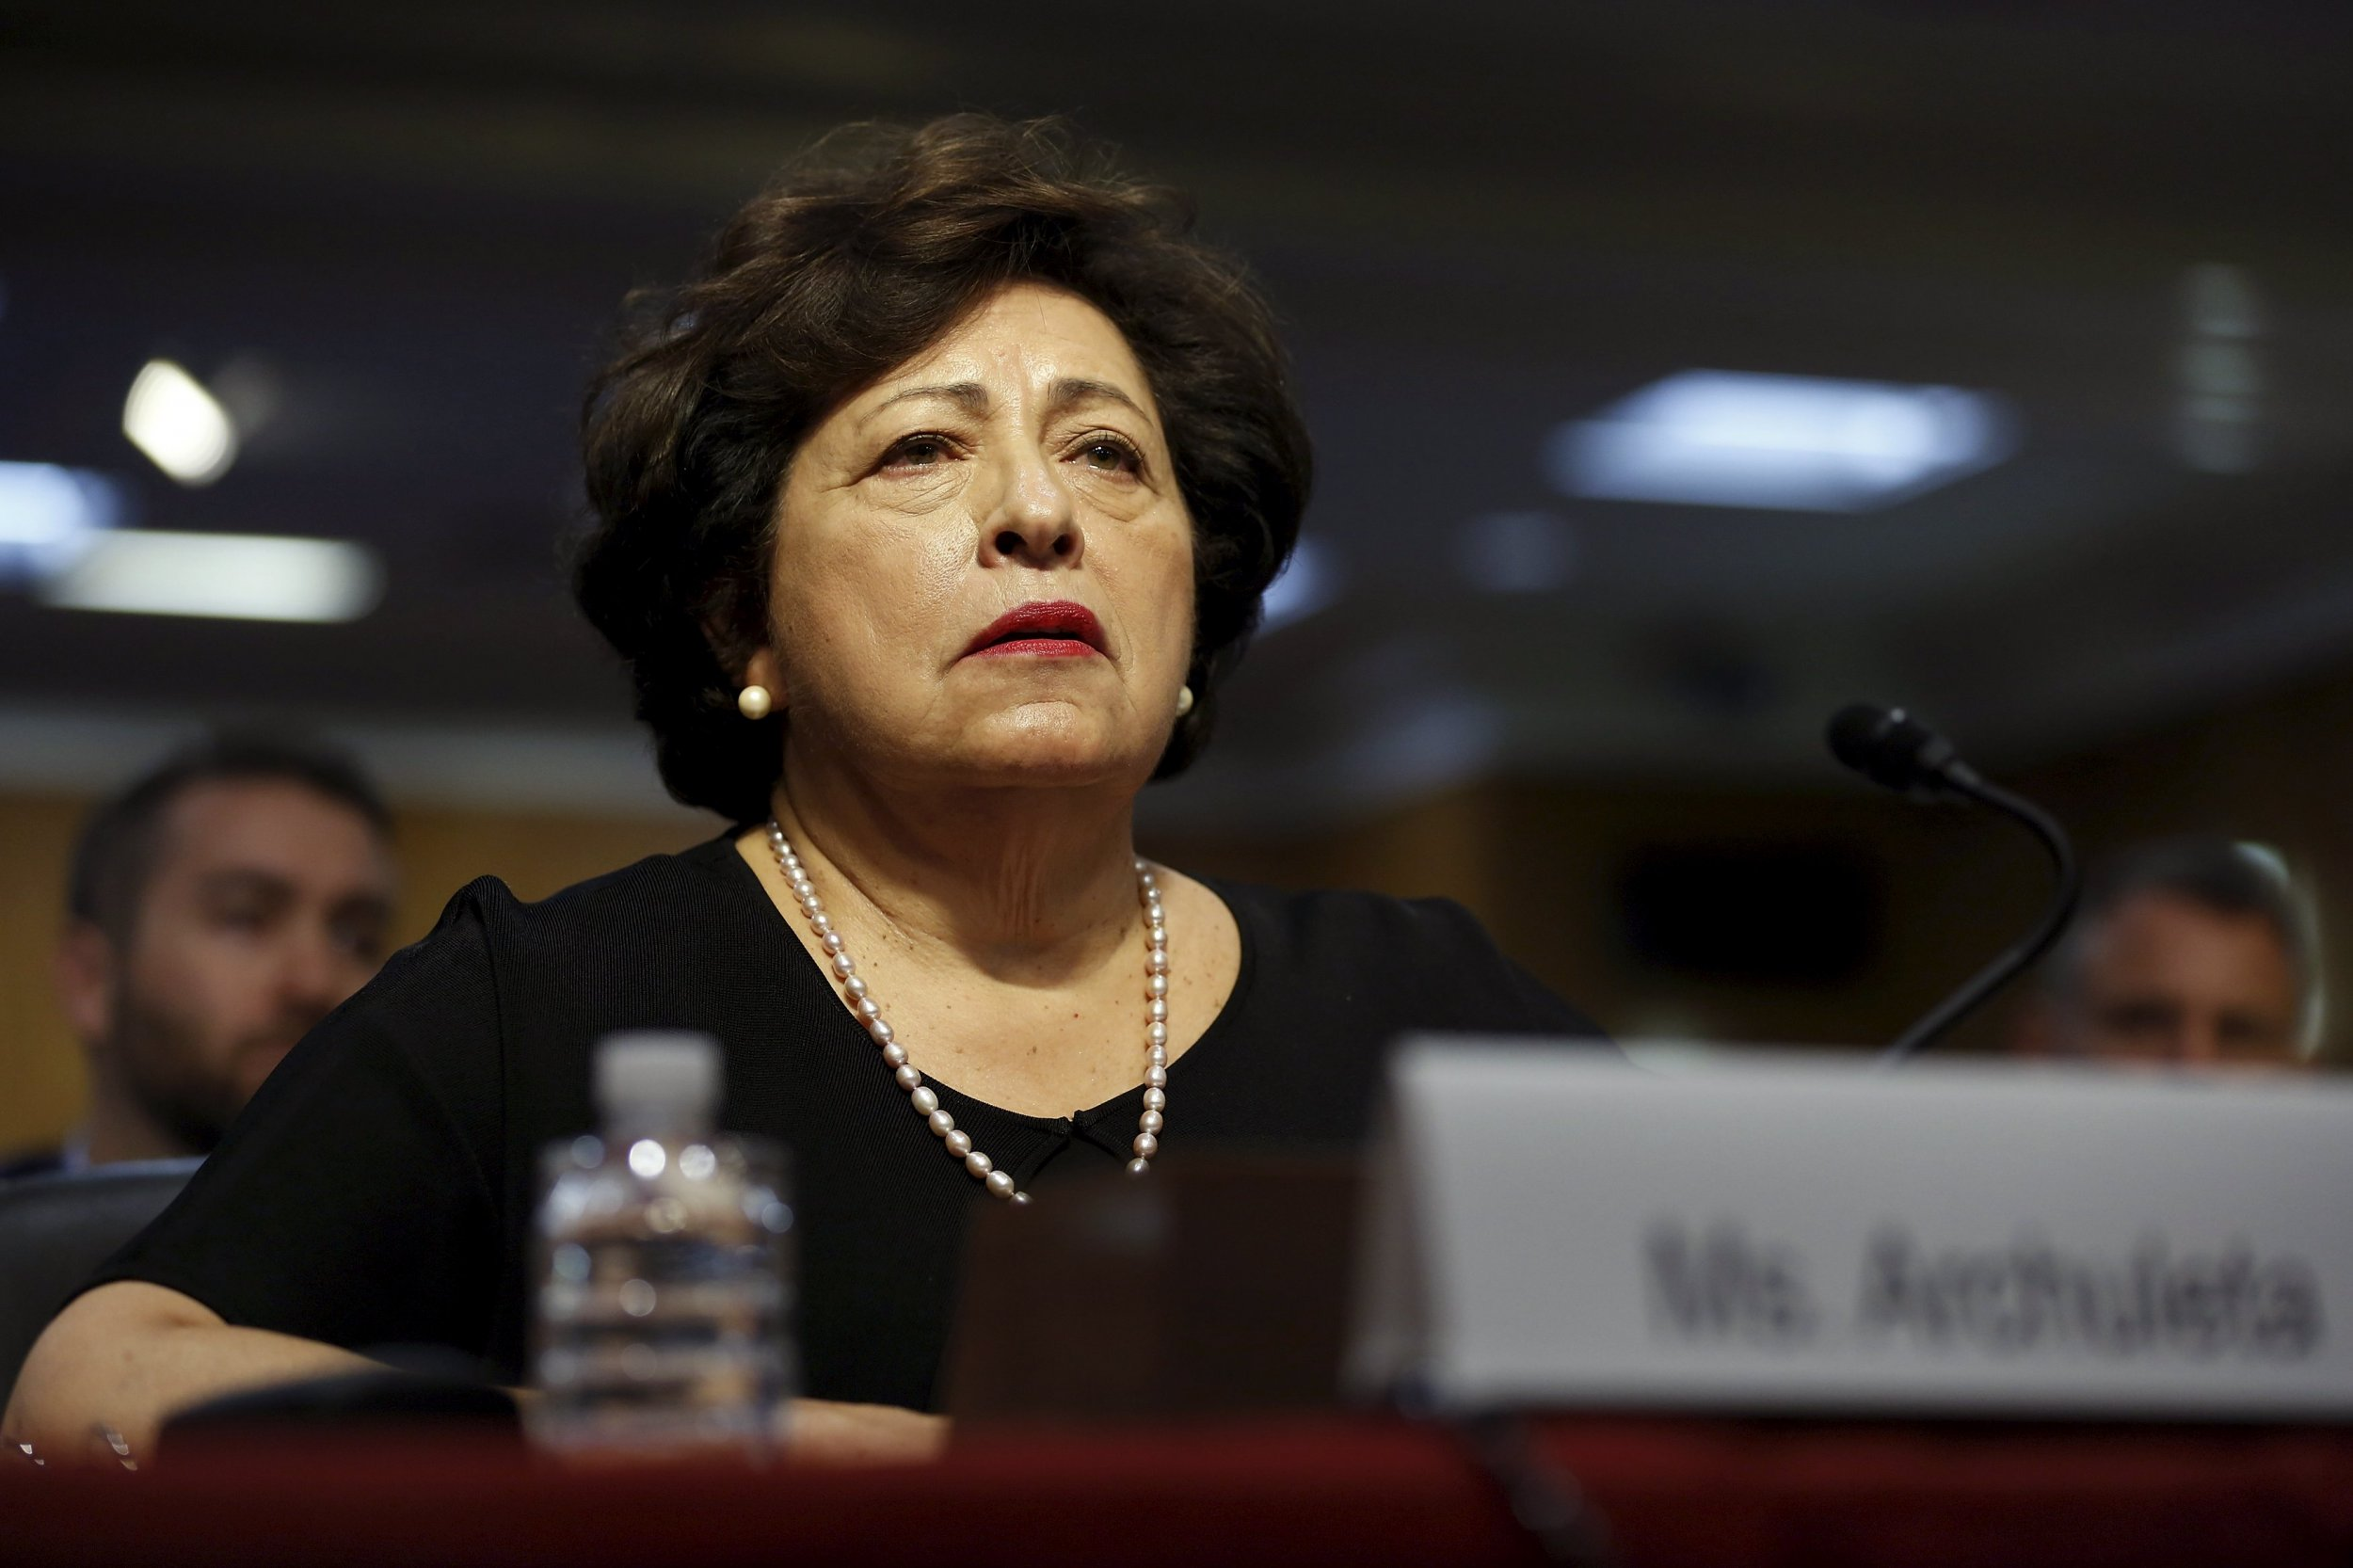 OPM Director Katherine Archuleta Resigns After Massive Hack